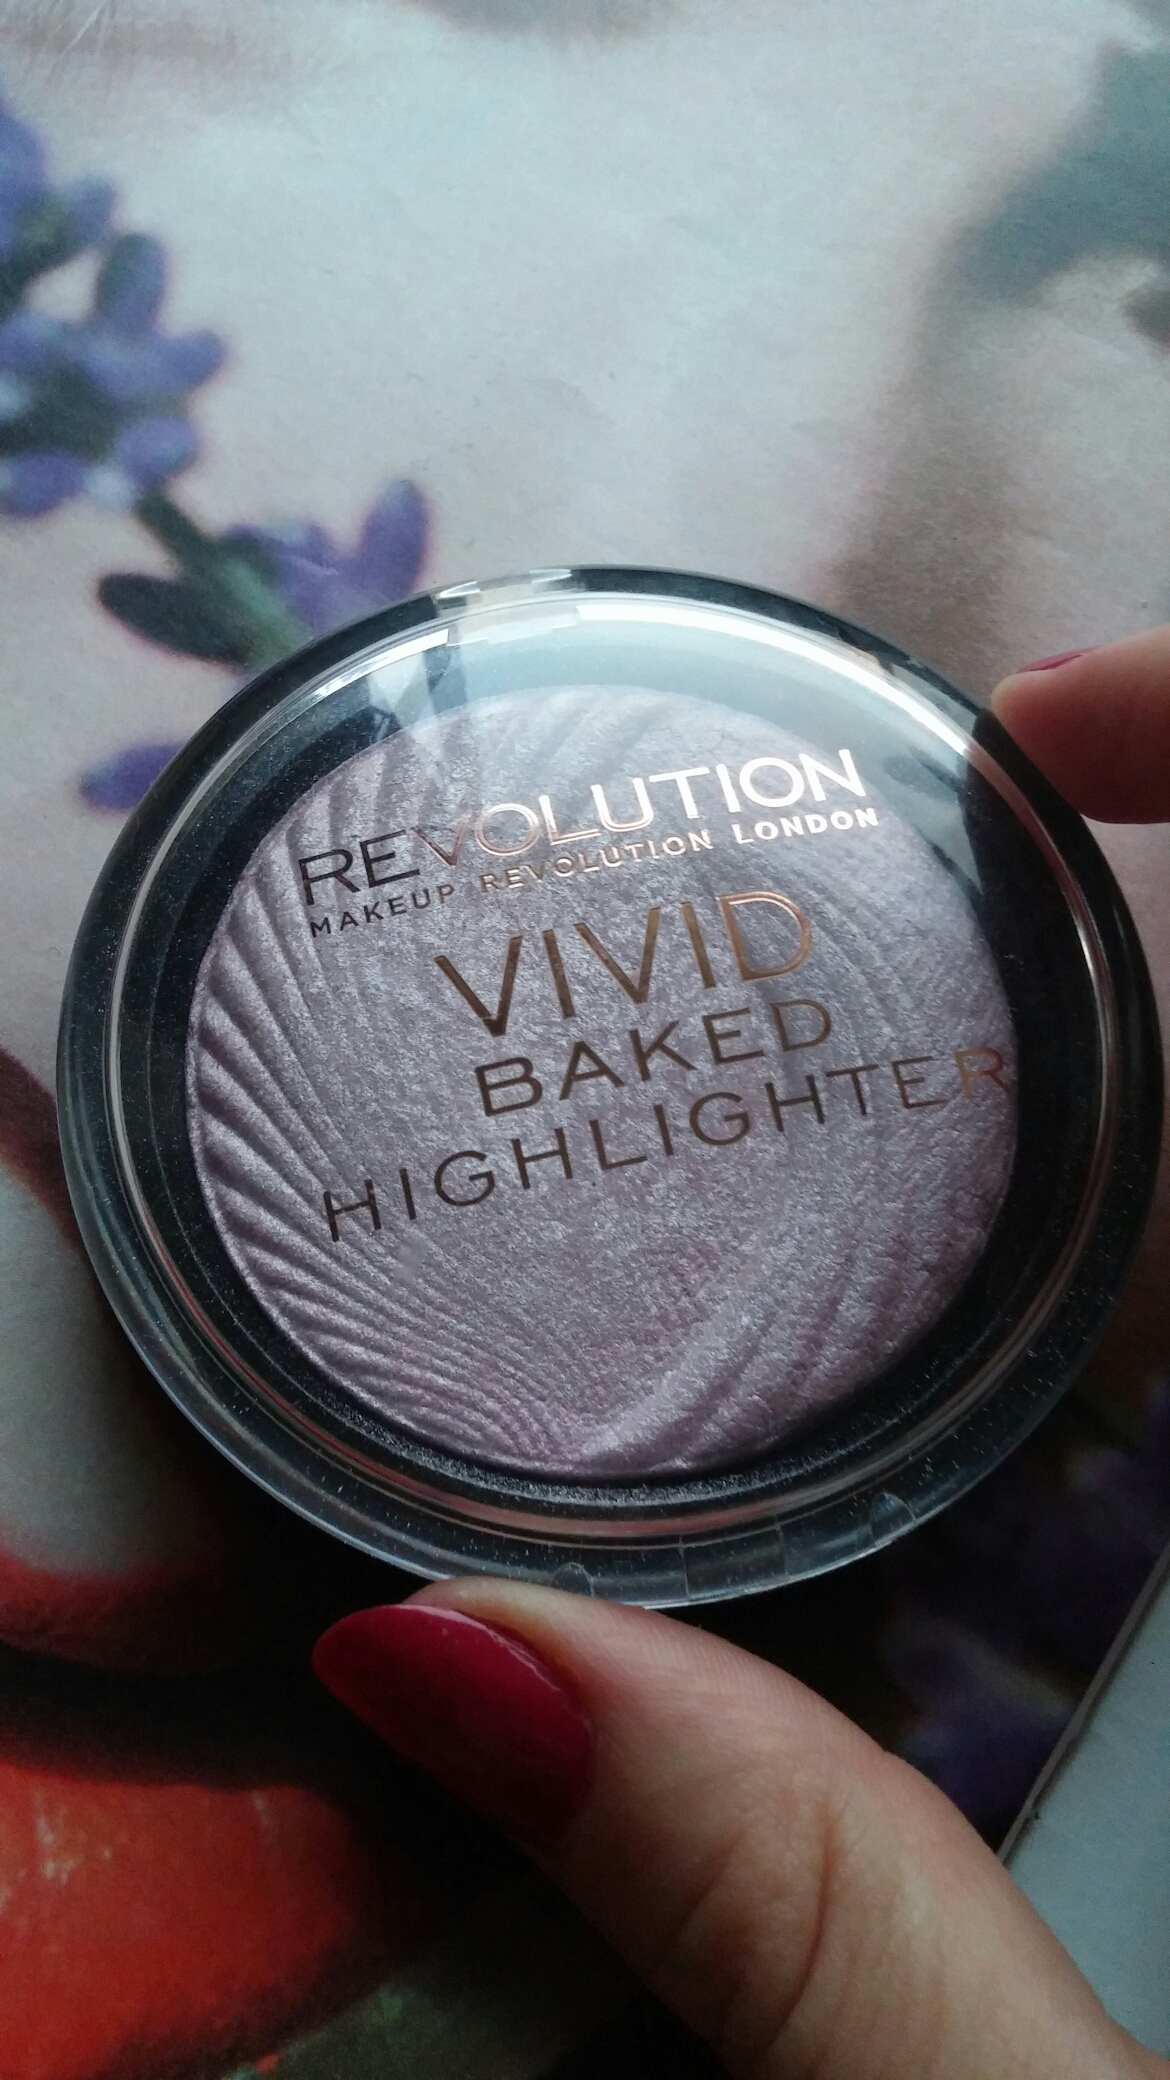 makeup revolution vivid bake highlighter